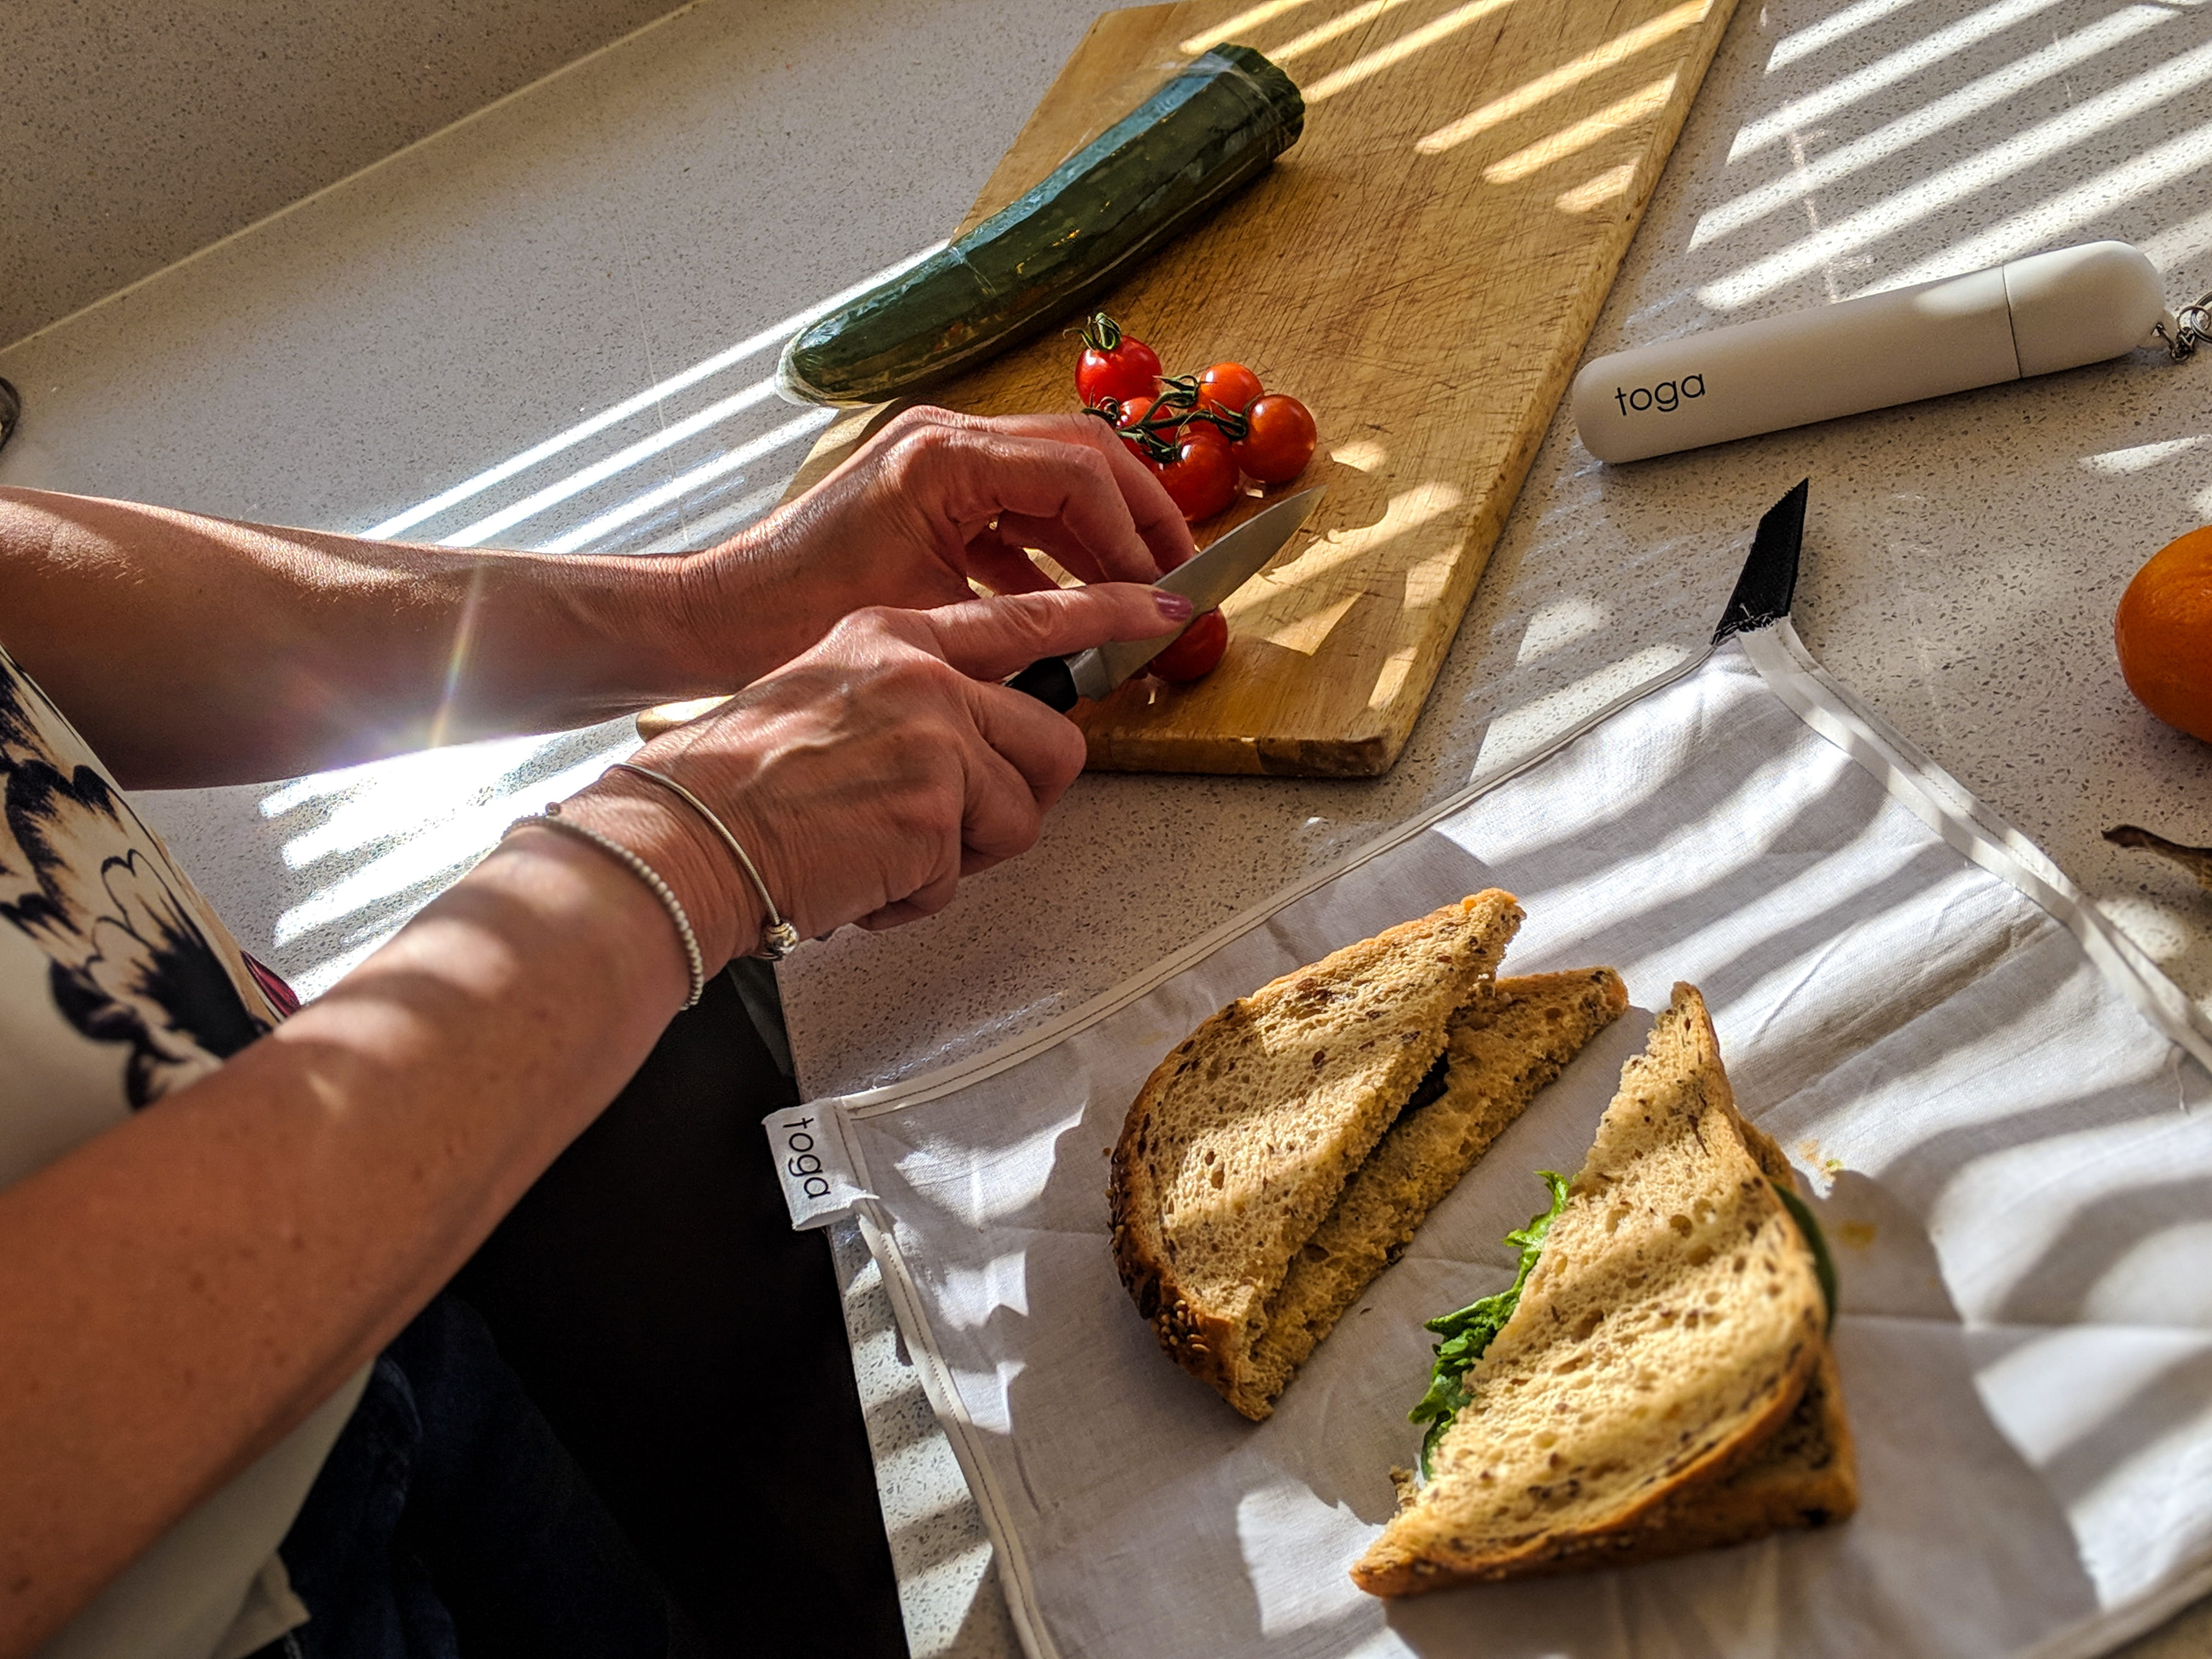 Vegetables being cut on a chopping board, with a cut sandwich and the Toga on the counter.